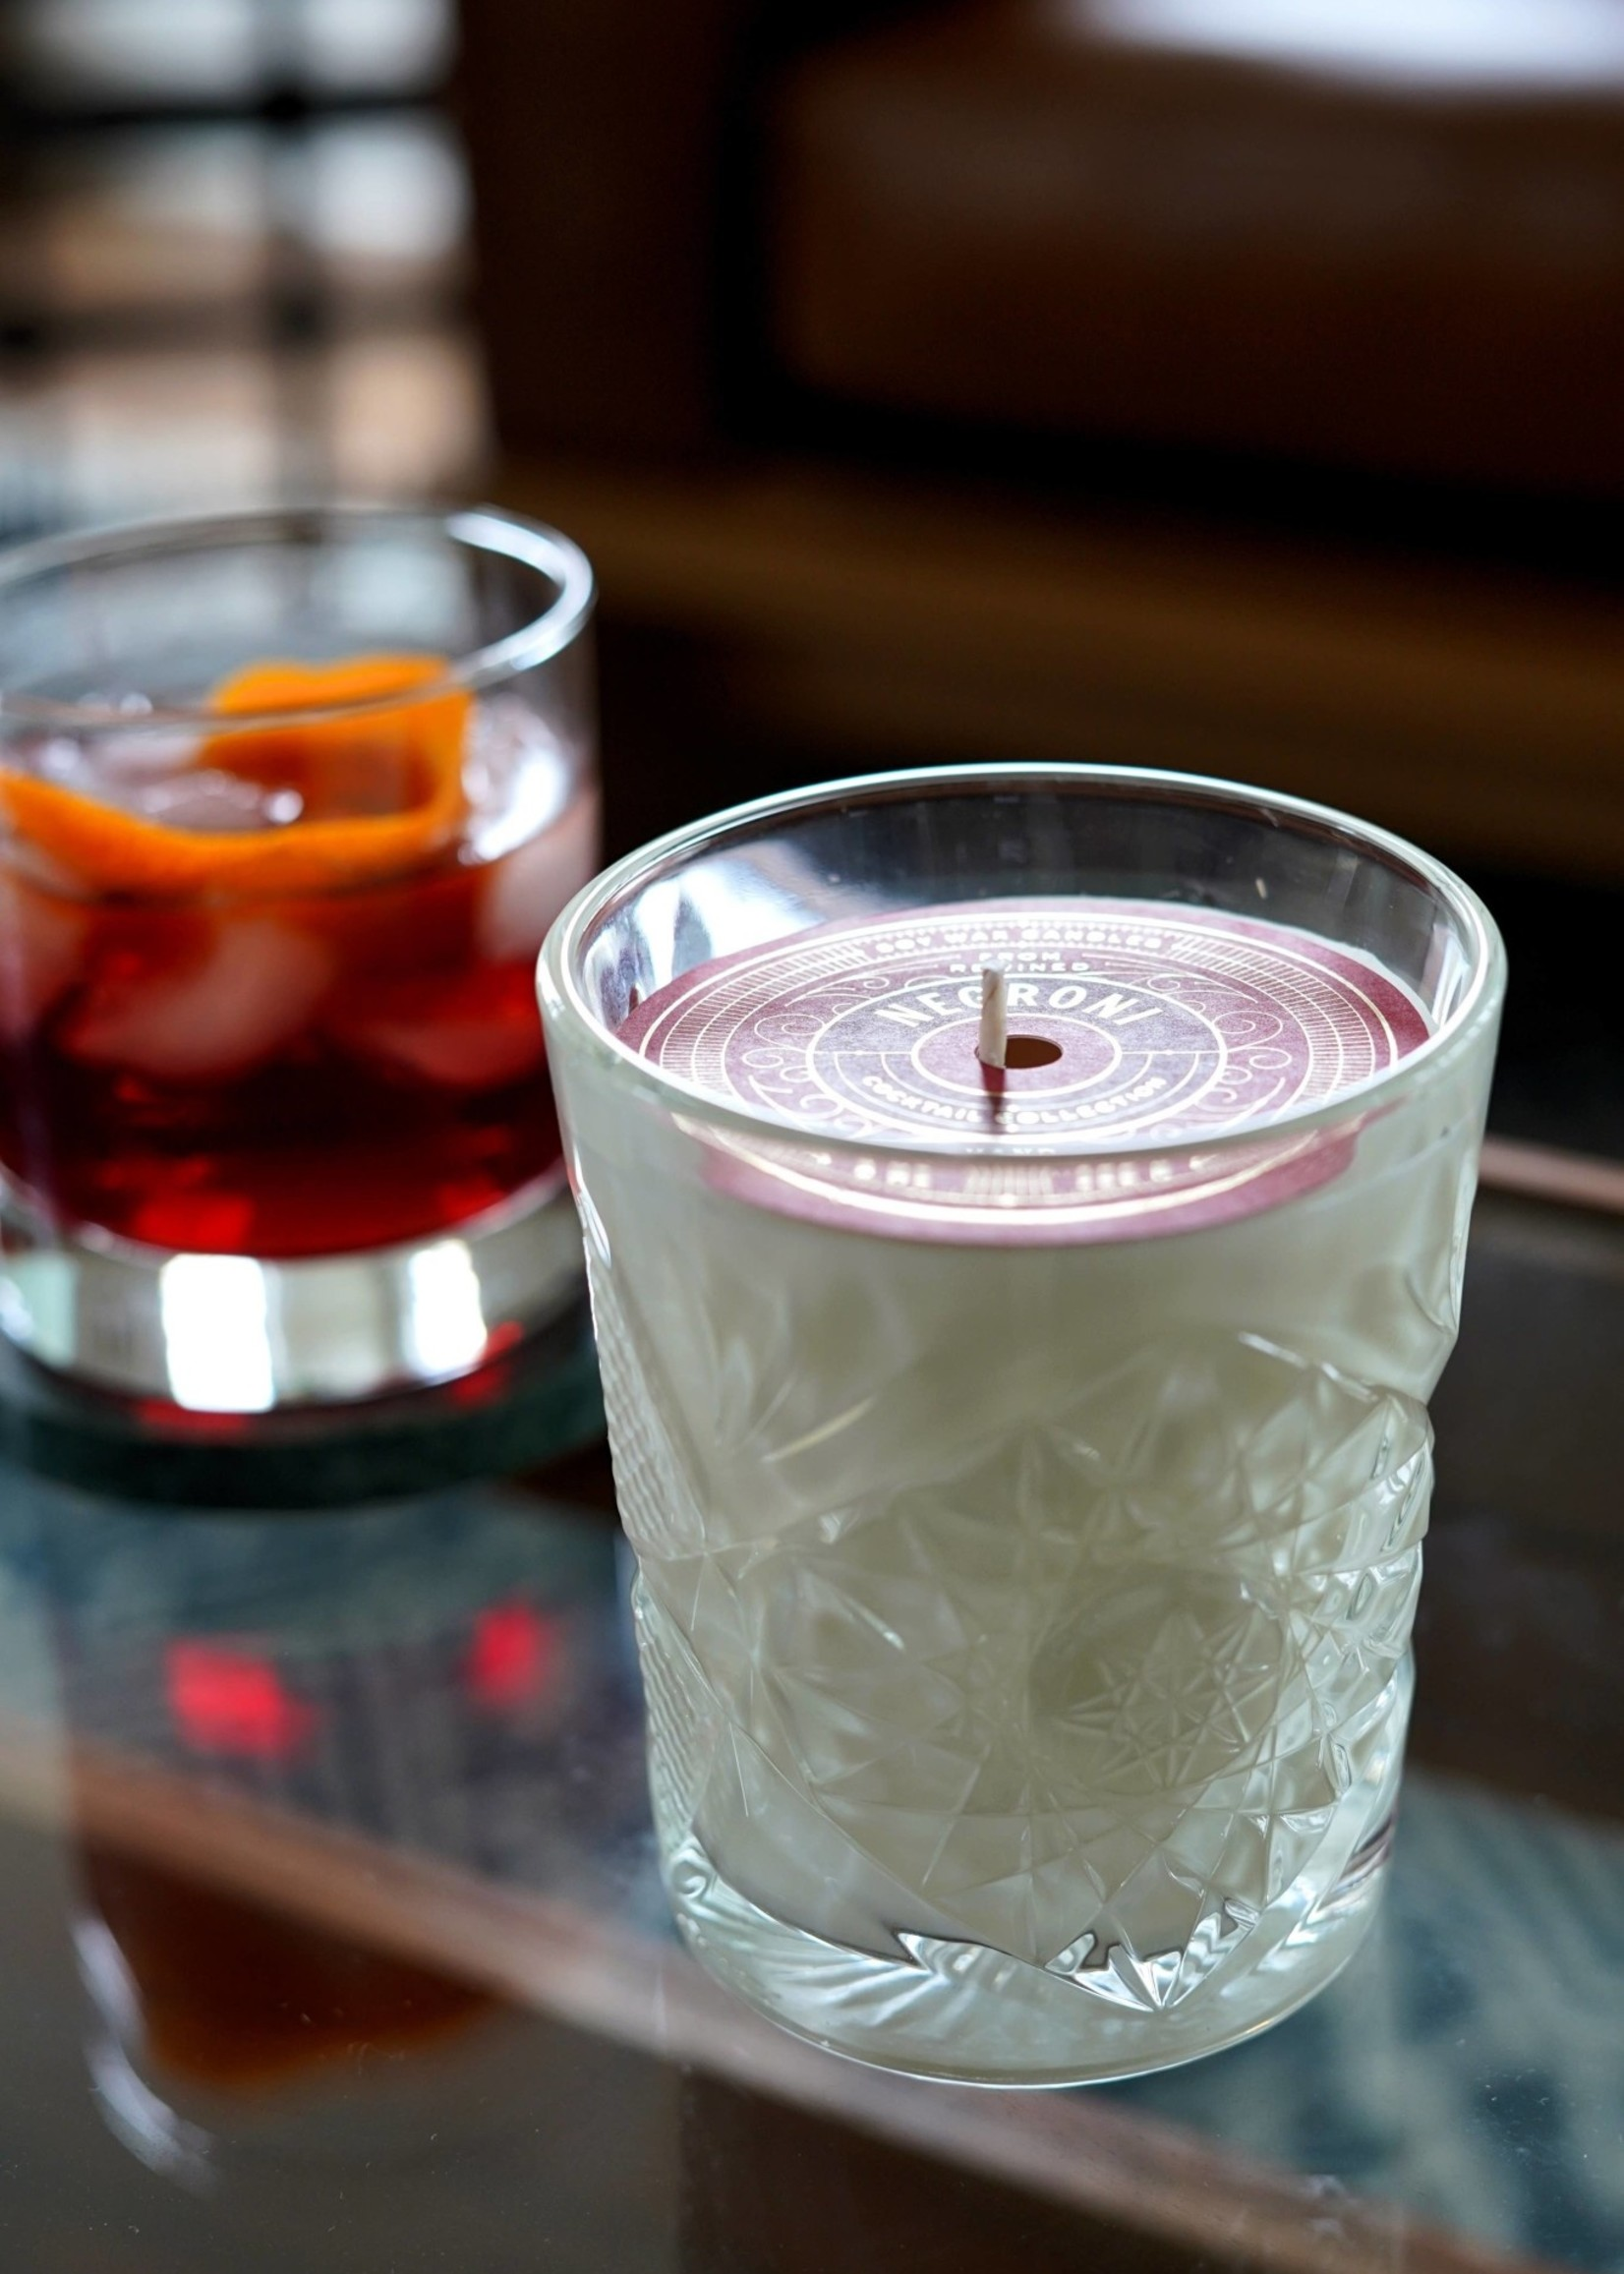 Rewined Negroni Vintage Inspired Candle (9 oz)